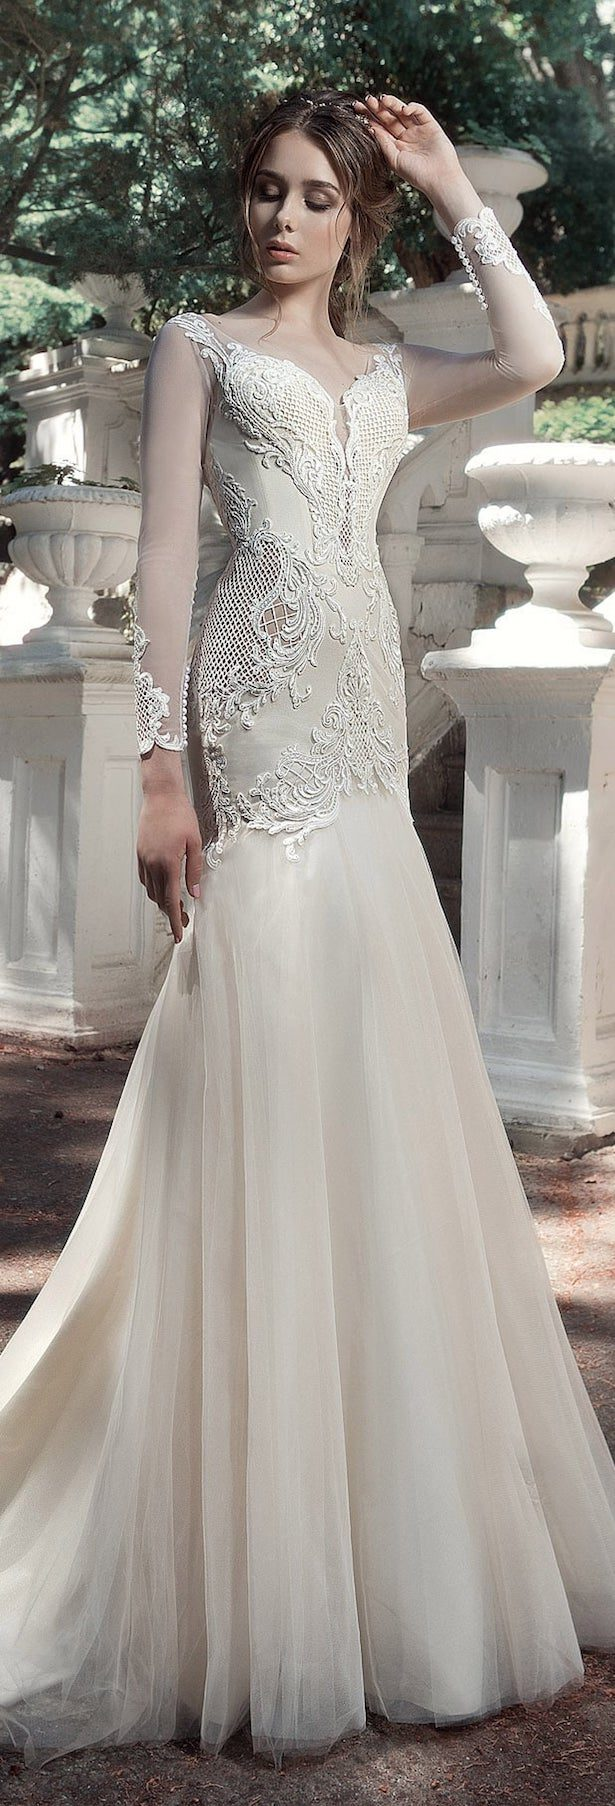 Stunning Winter Wedding Dresses - Belle The Magazine